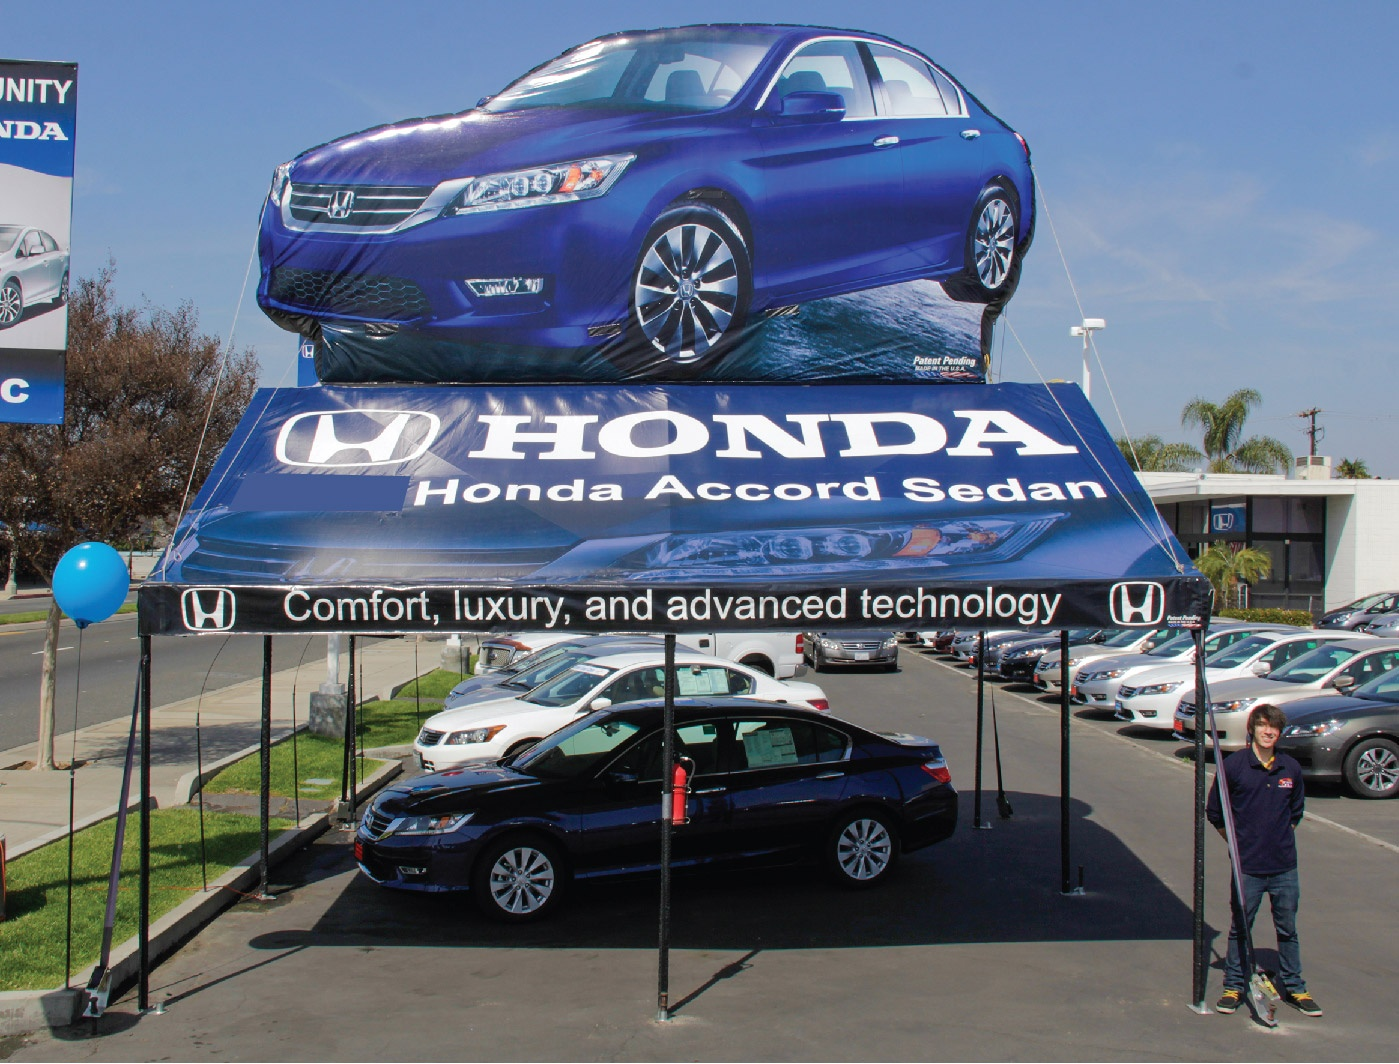 Honda Accord 20x20 Frame Tent with graphics printed on the tent with Honda slogans